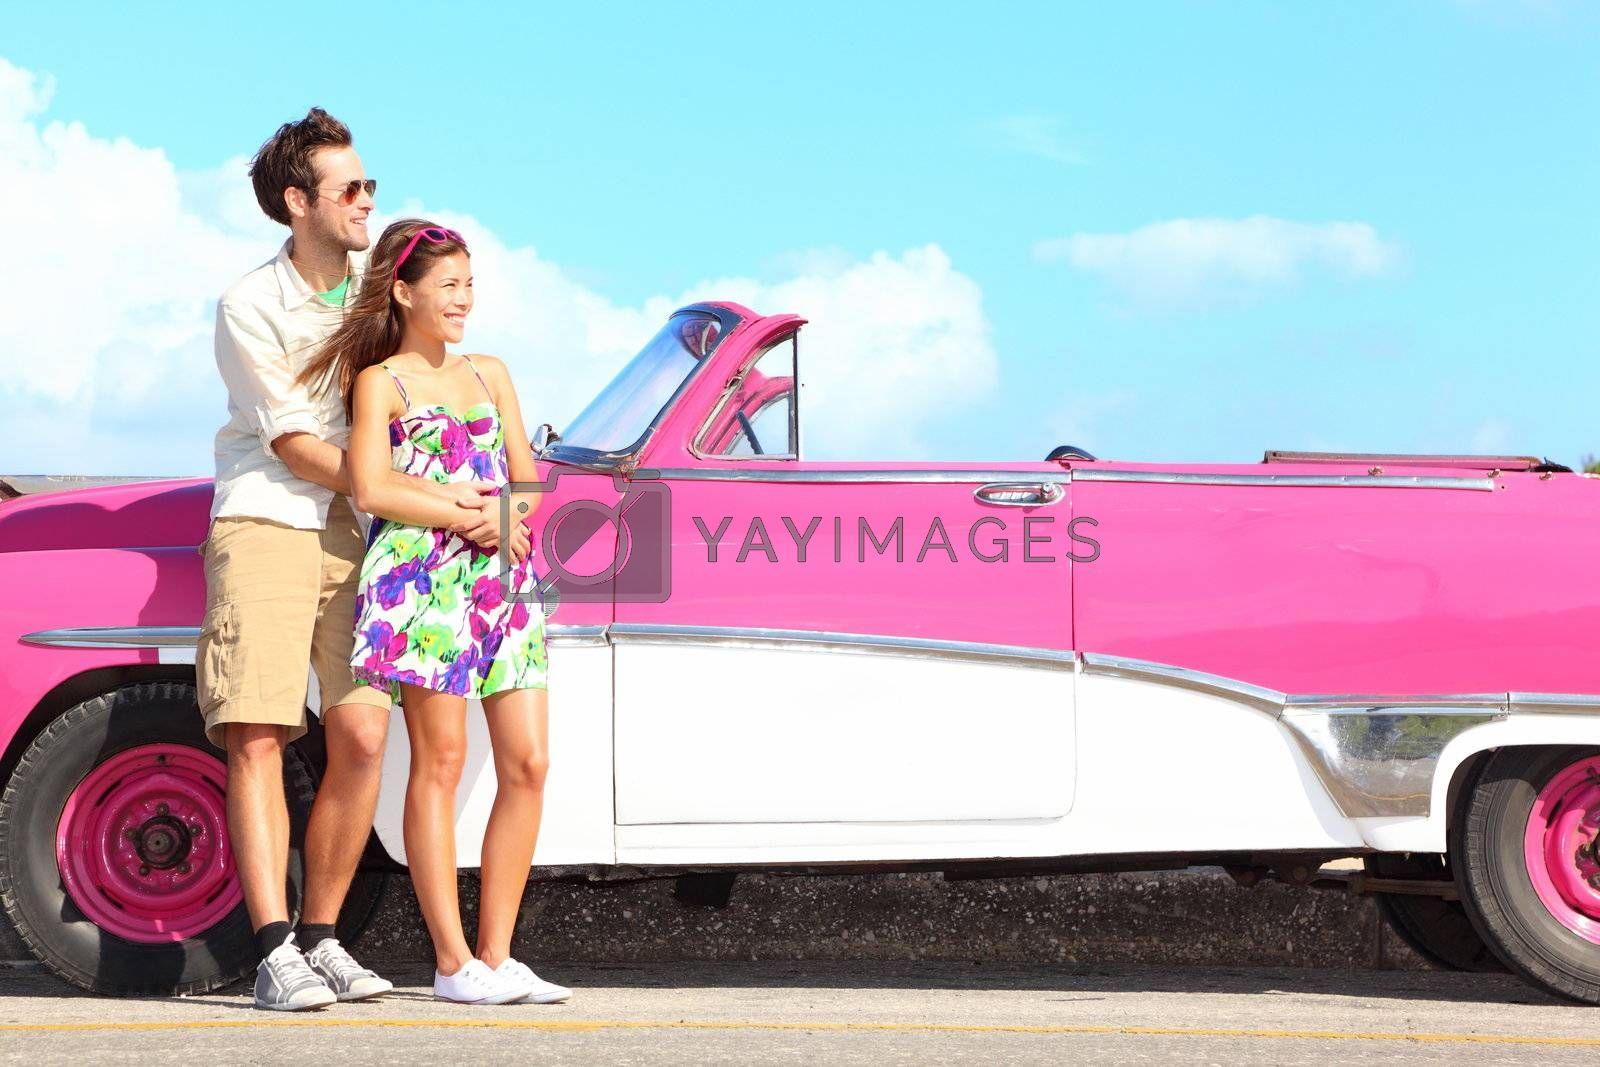 Couple and vintage retro car. Happy smiling young couple standing by pink old vintage car during summer road trip travel in Havana, Cuba. Interracial couple, Asian woman, Caucasian man.